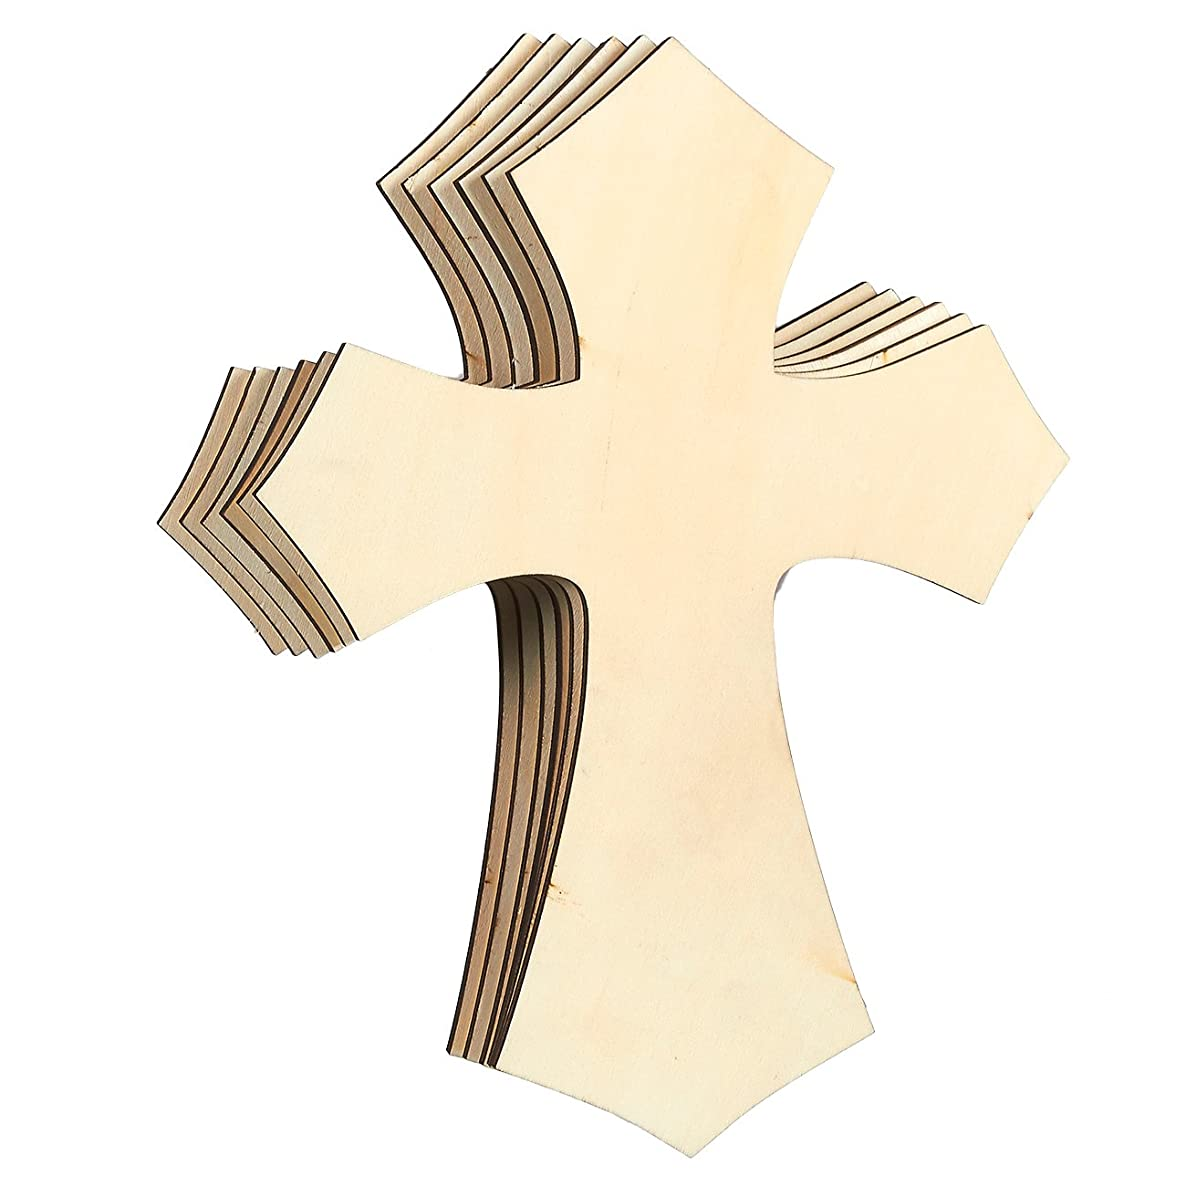 Unfinished Wood Cutout - 6-Pack Cross Shaped Wood Pieces for Wooden Craft DIY Projects, Sunday School, Church, Home Decoration, 11.8 x 8.8 x 0.188 inches